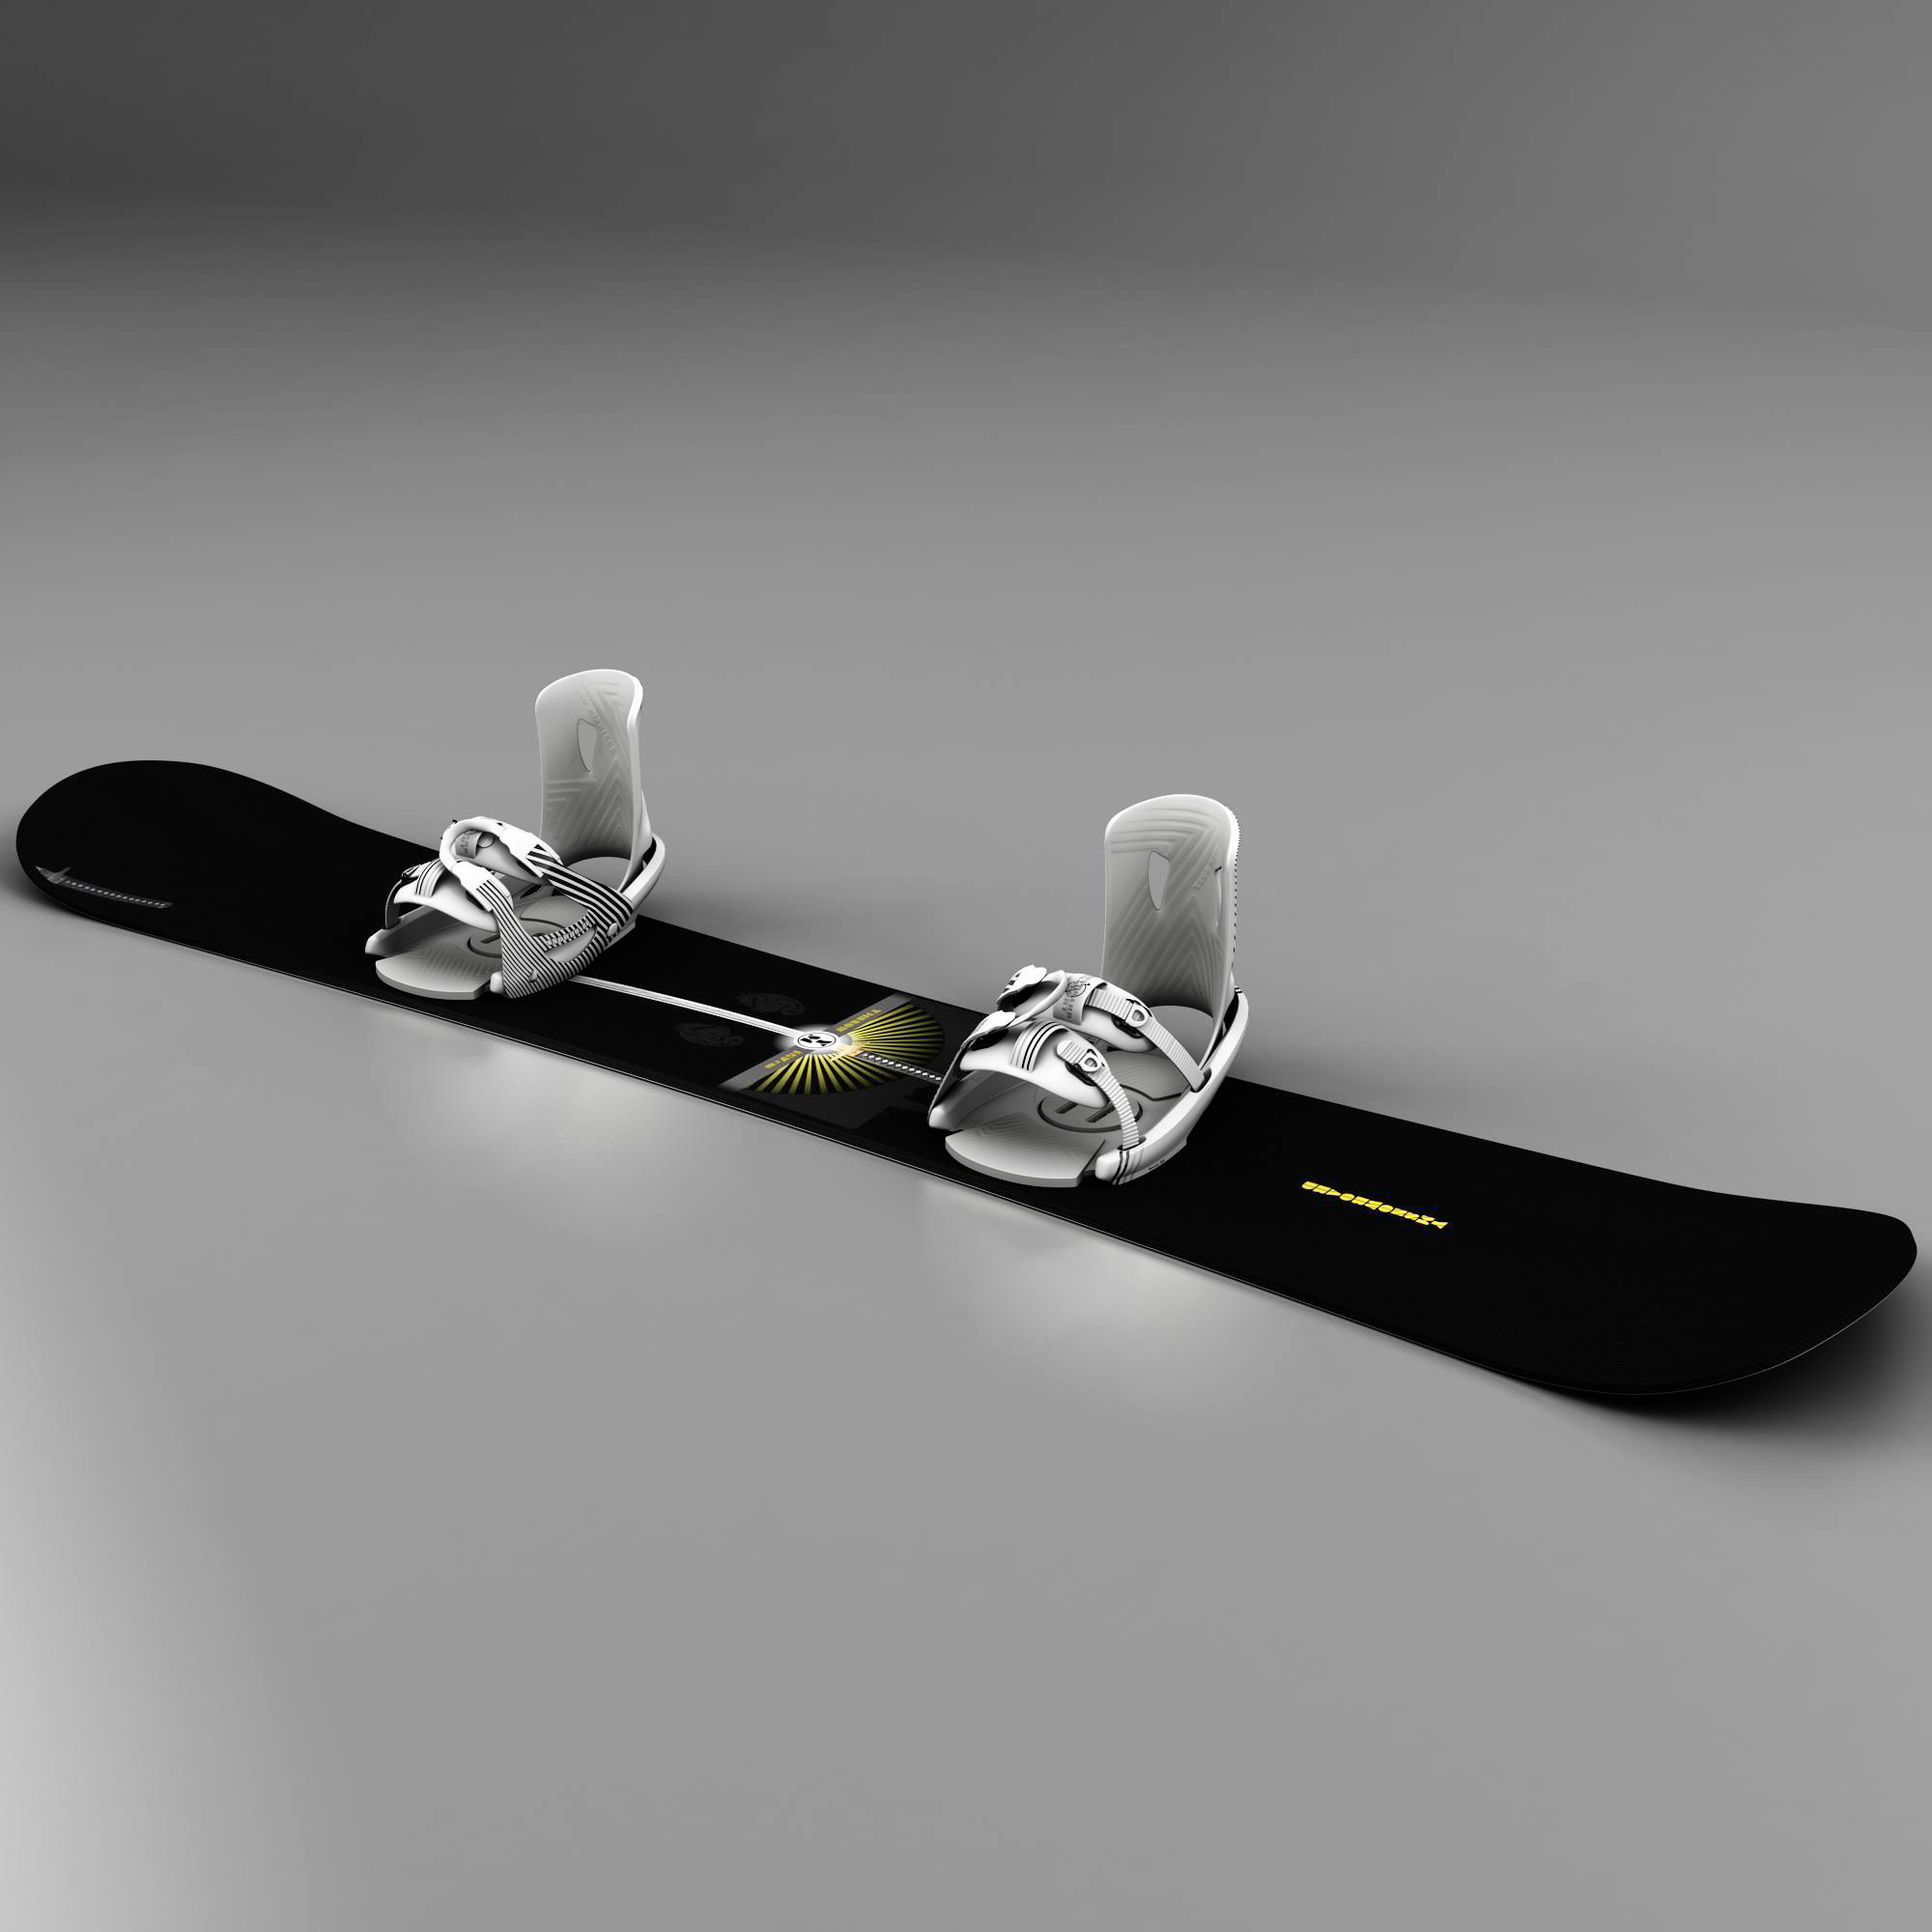 board-bindings 3d model 3ds max fbx ma mb obj 157620